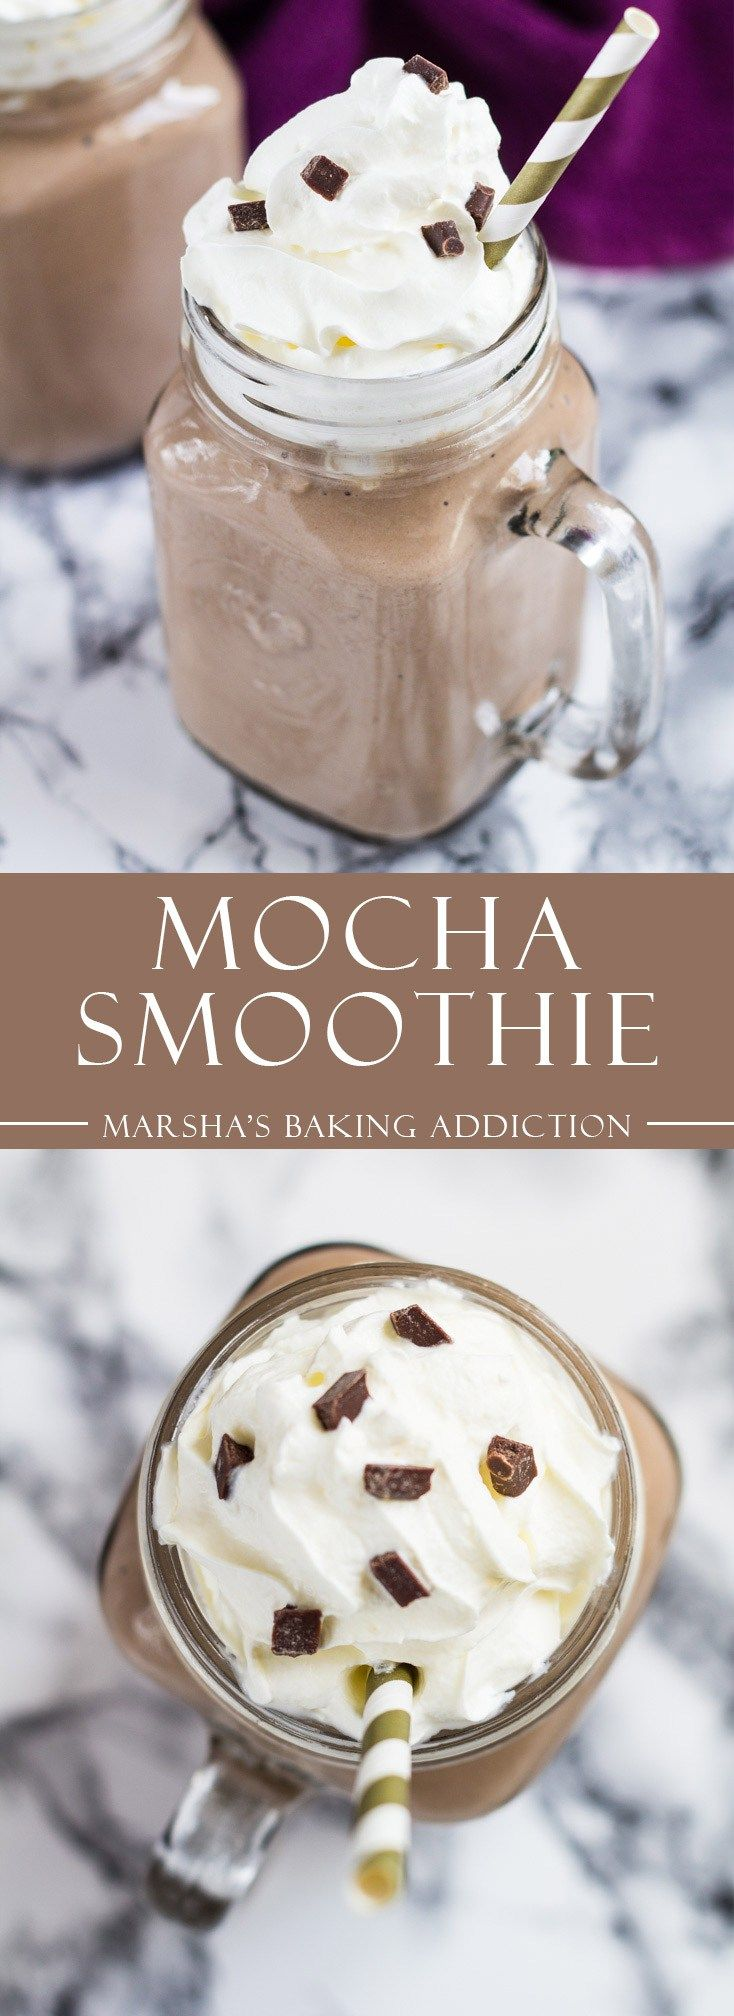 Mocha Smoothie | marshasbakingaddiction.com @marshasbakeblog (Chocolate Milkshake Starbucks)